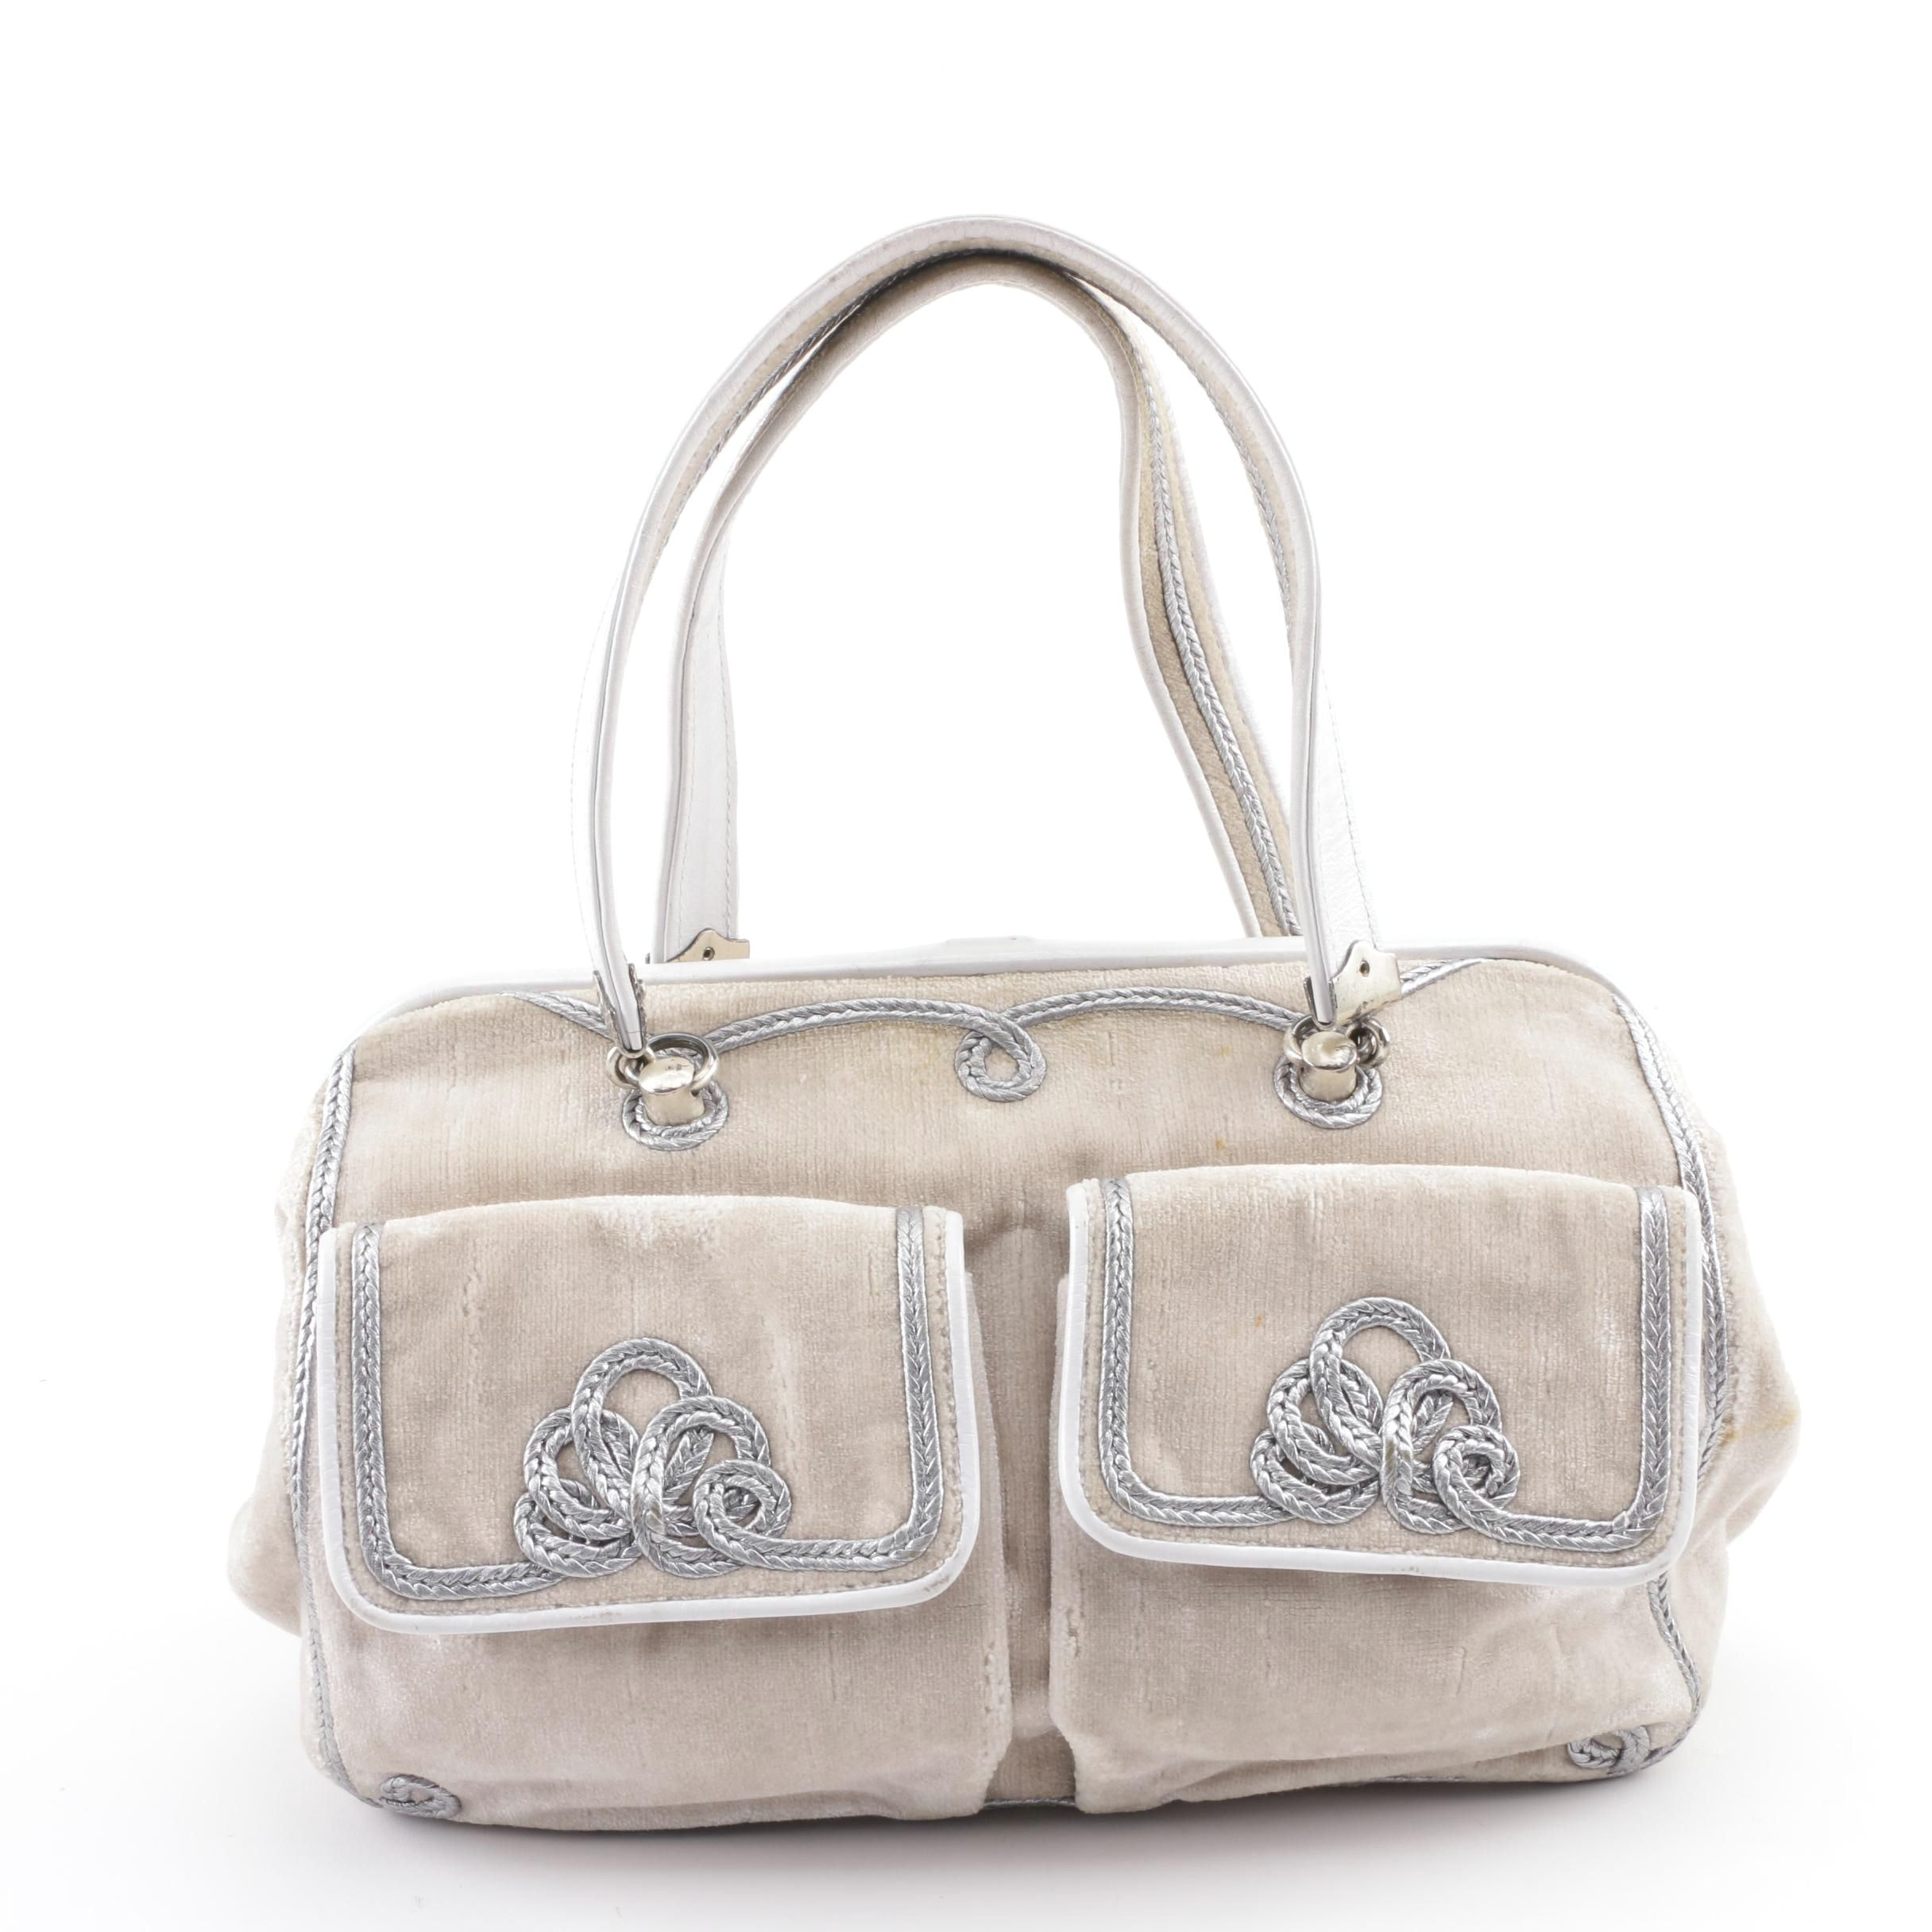 Bottega Veneta Champagne Velvet Satchel with Silver Metallic Braiding